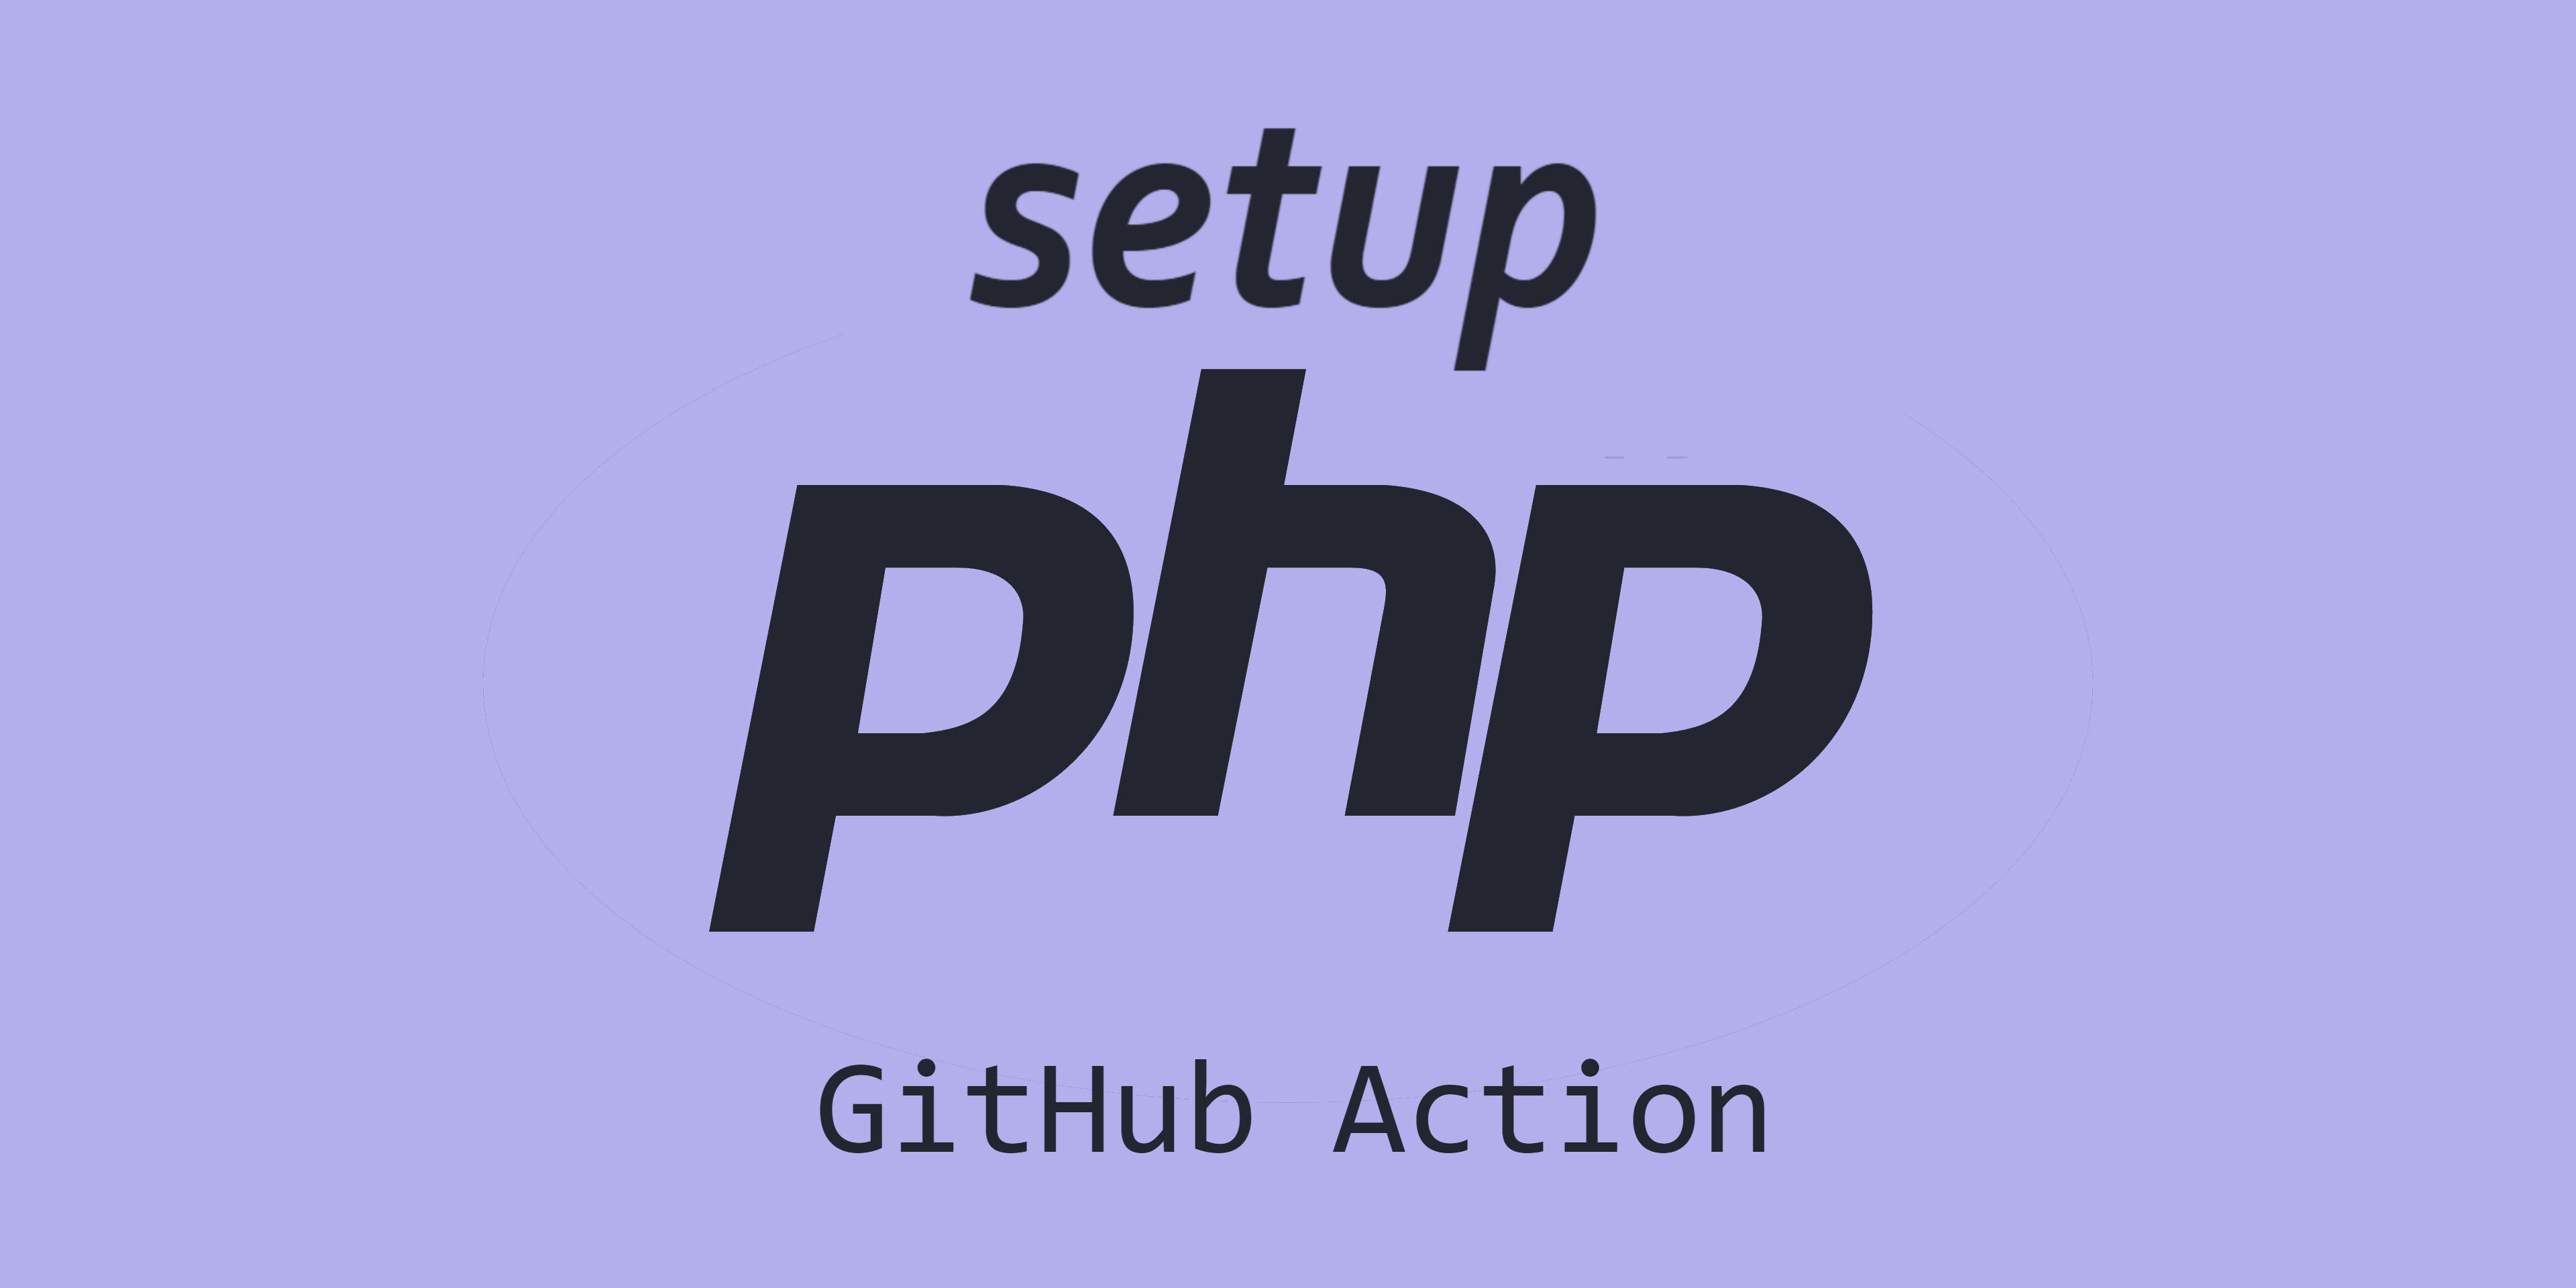 Setup PHP in GitHub Actions